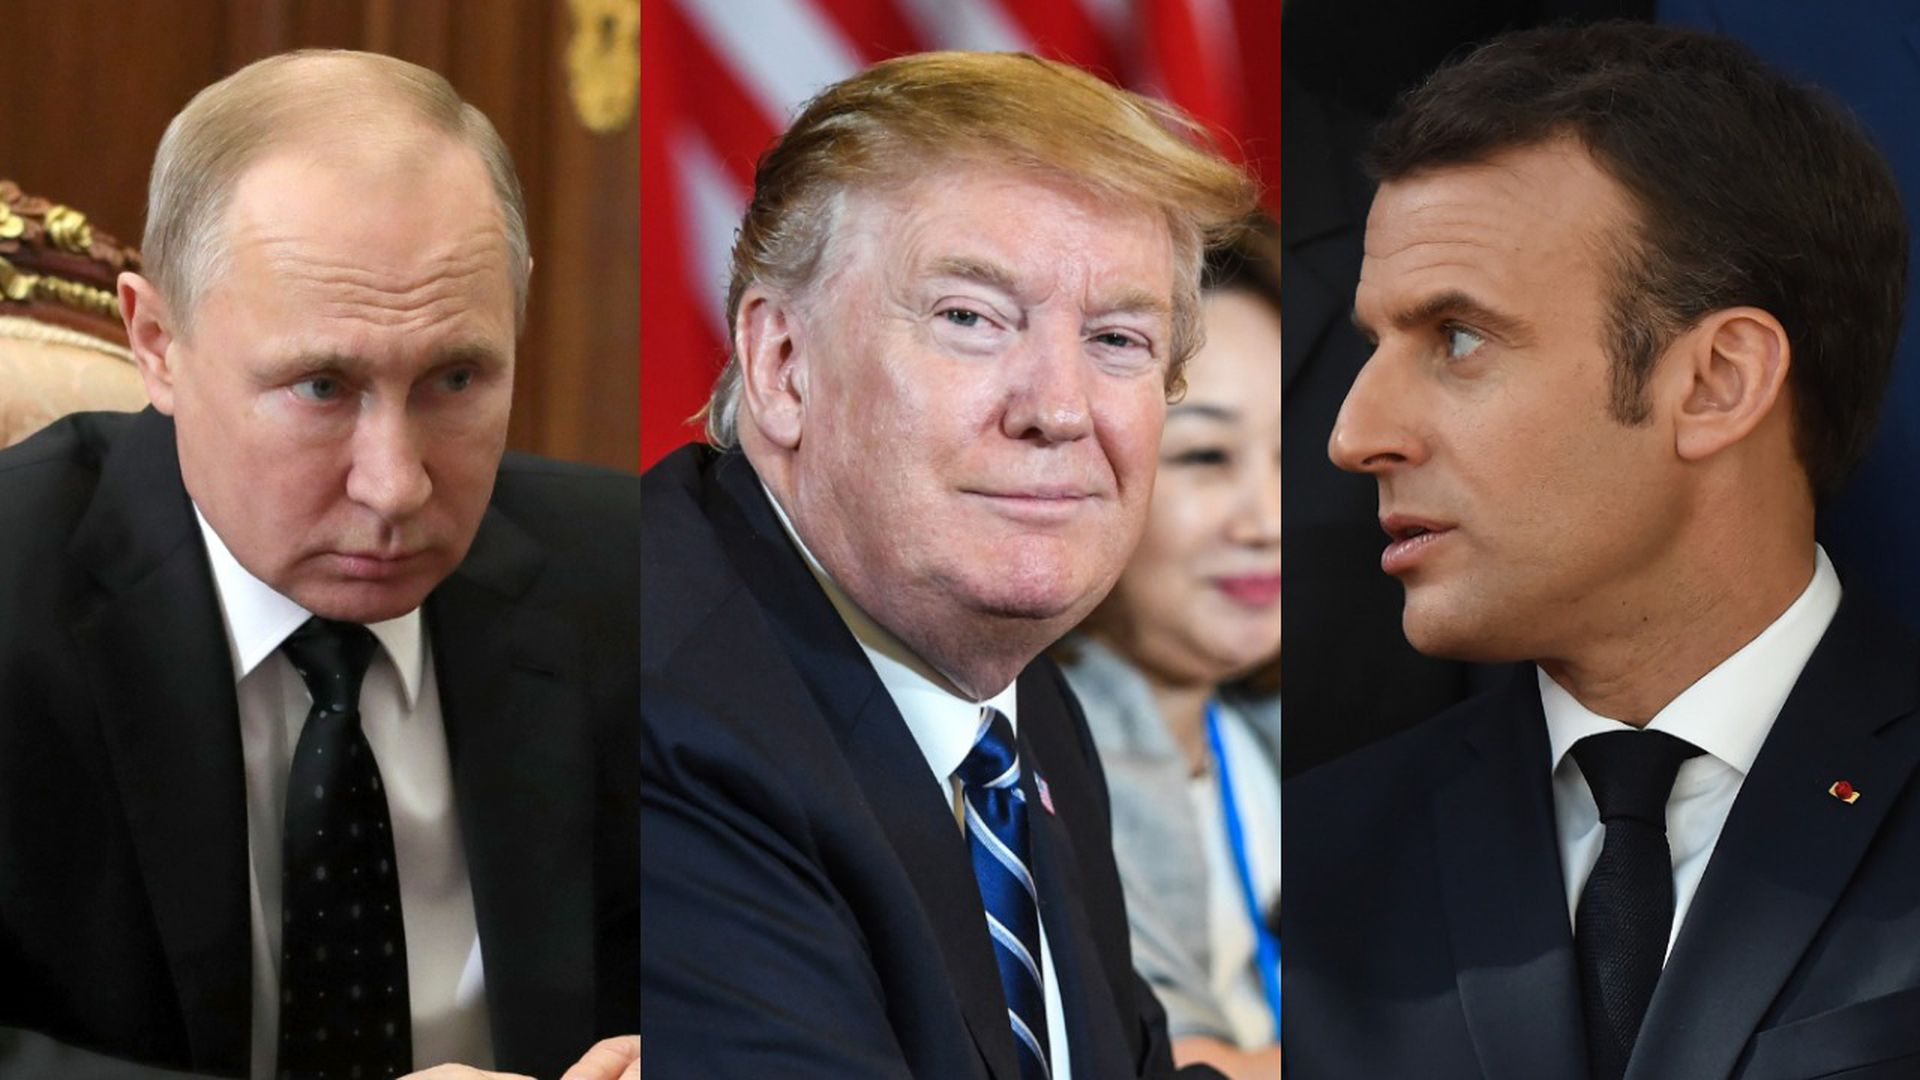 From Russia to France, countries around the world criticize Trump's Golan announcement